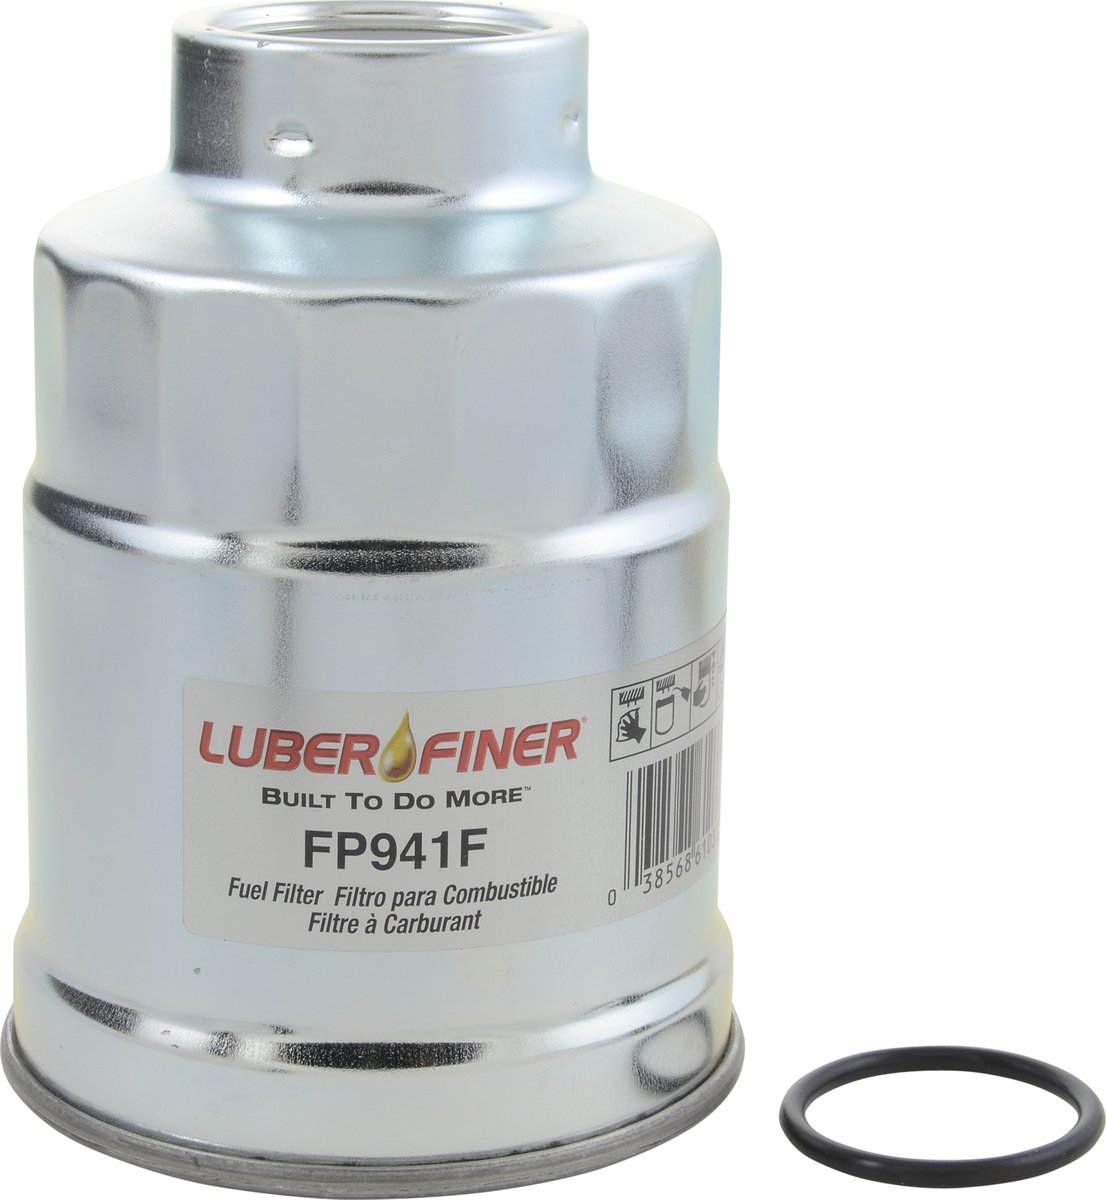 Luber Finer Fp941f Heavy Duty Fuel Filter Automotive 1998 Jeep Wrangler Location